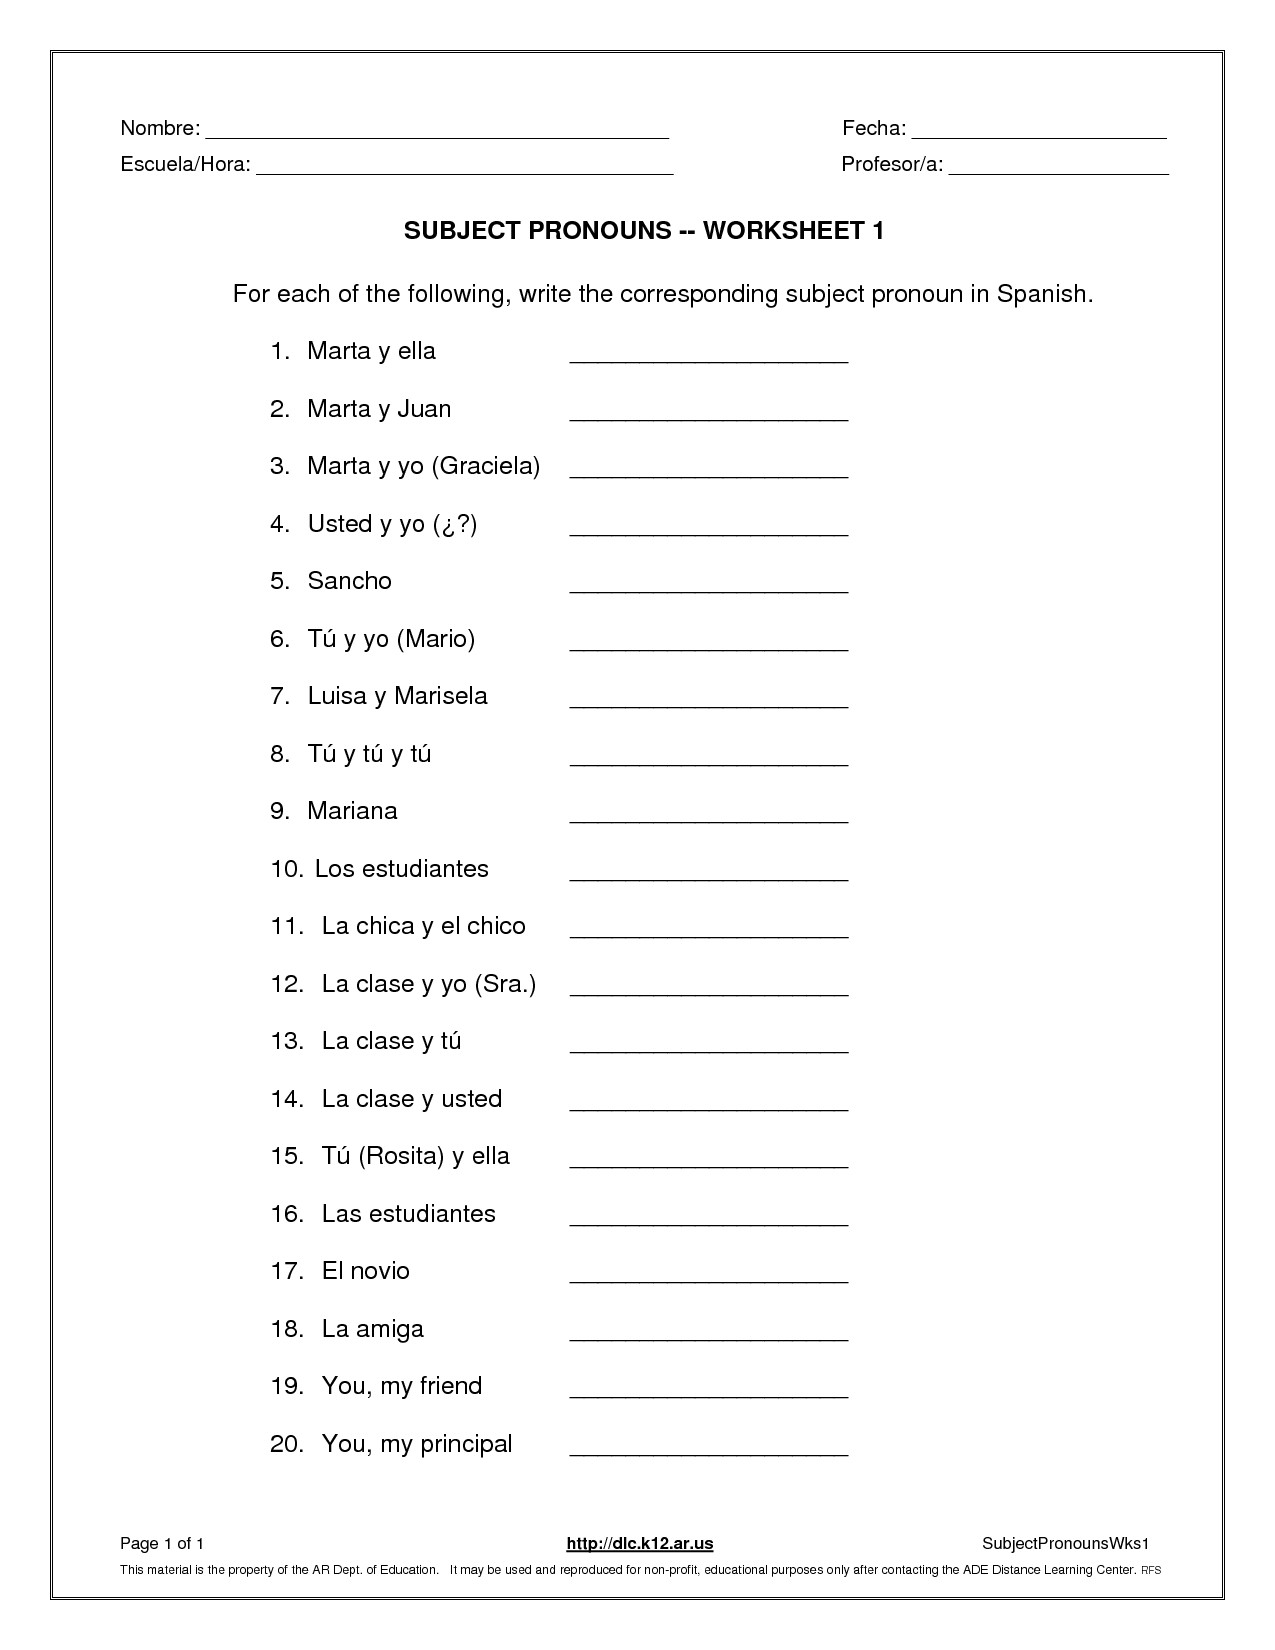 Worksheets Spanish Worksheet Answers la escuela de ingles eva subject pronouns worksheet cosas para worksheet